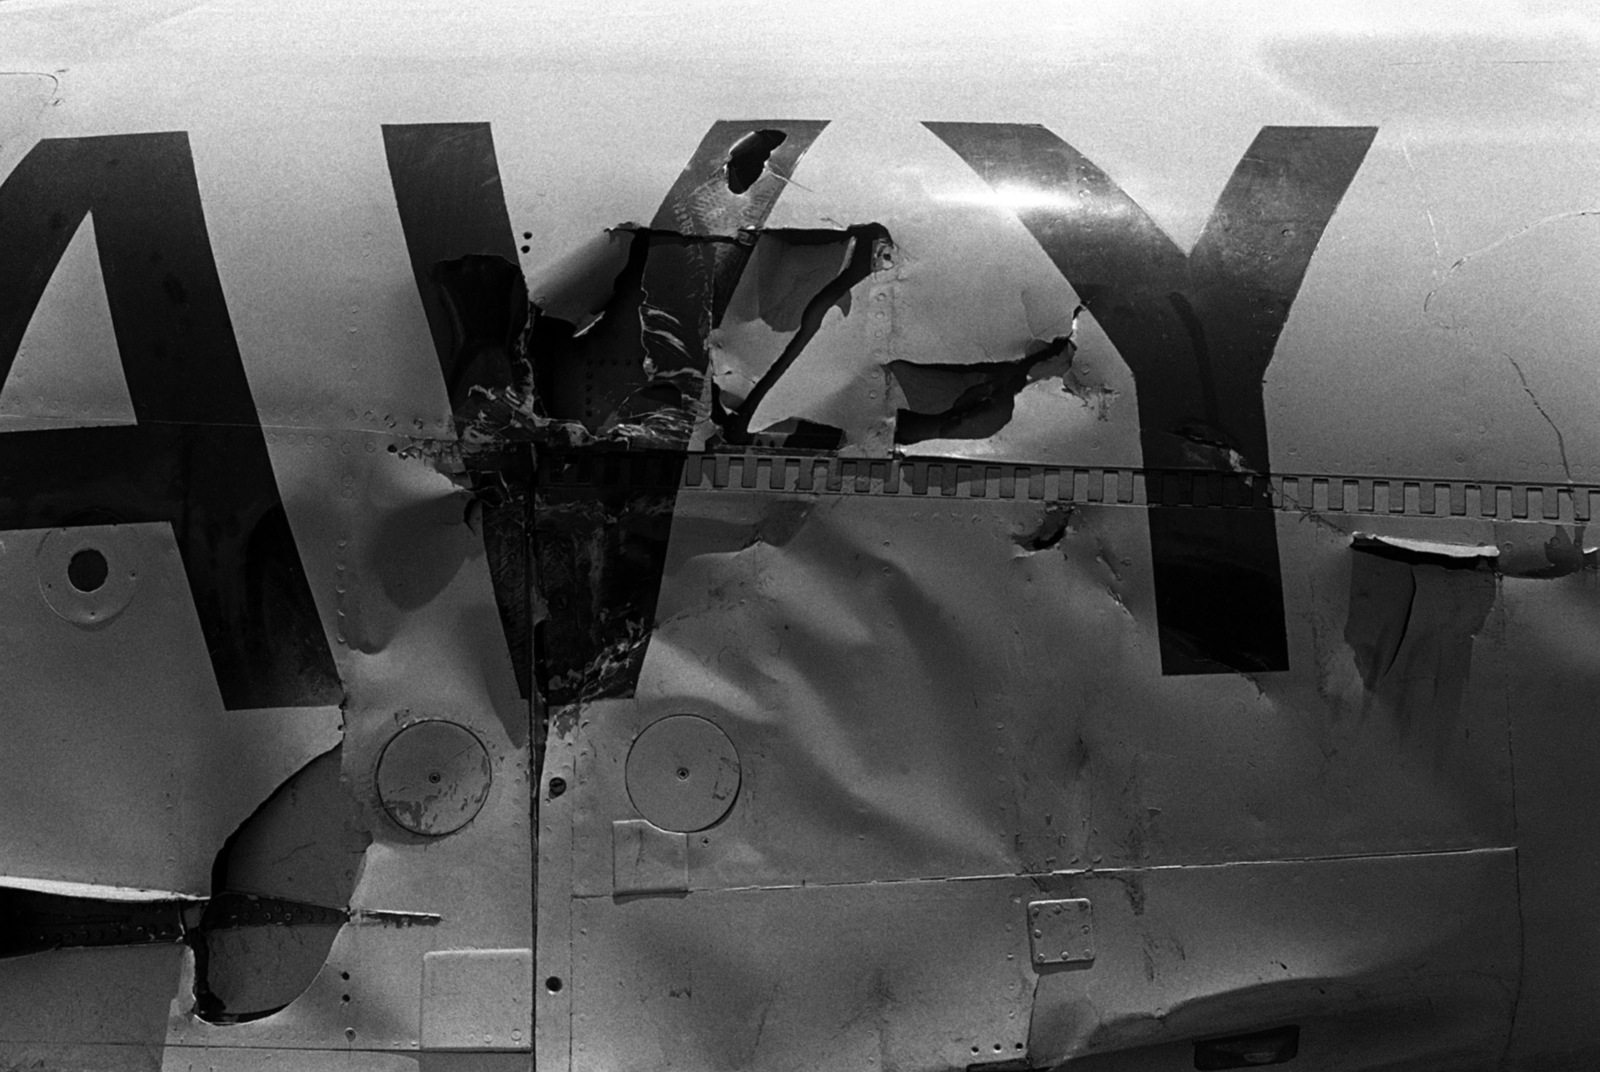 A view of damage caused to the fuselage of an aircraft when the aircraft carrier USS MIDWAY (CV 41) when it collided with the Panamanian Freighter CACTUS